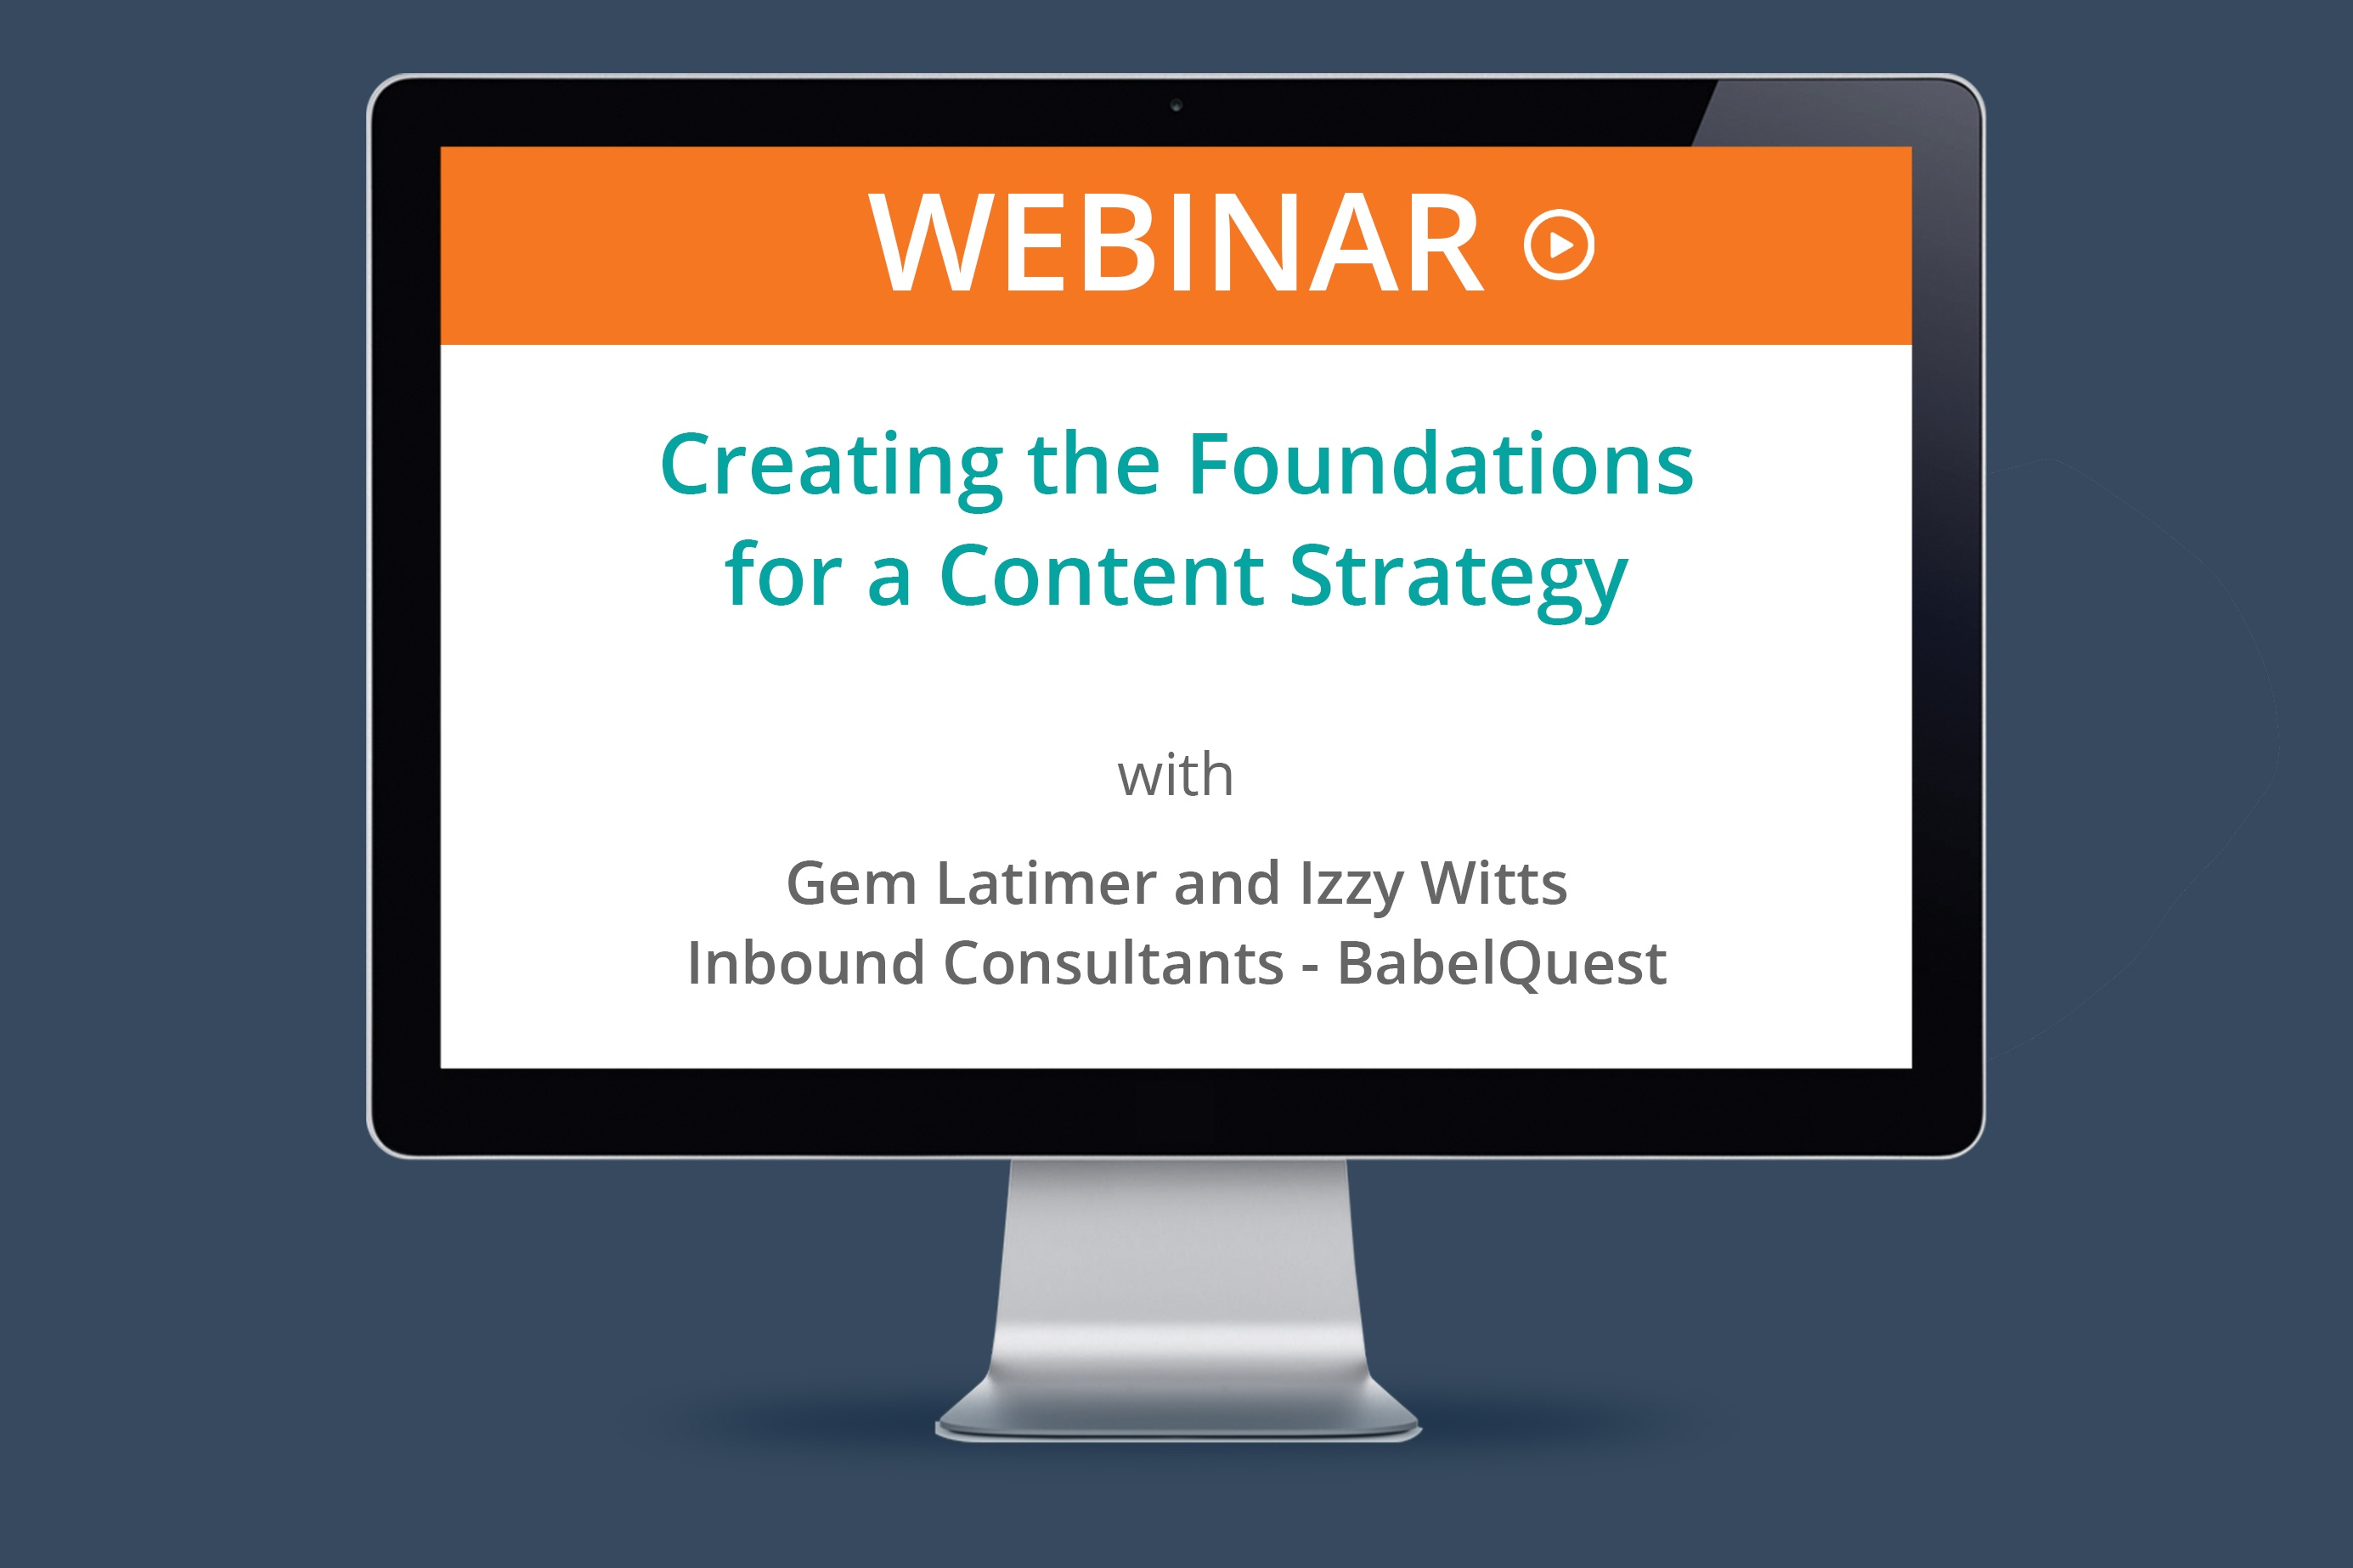 Creating The Foundations For a Content Strategy